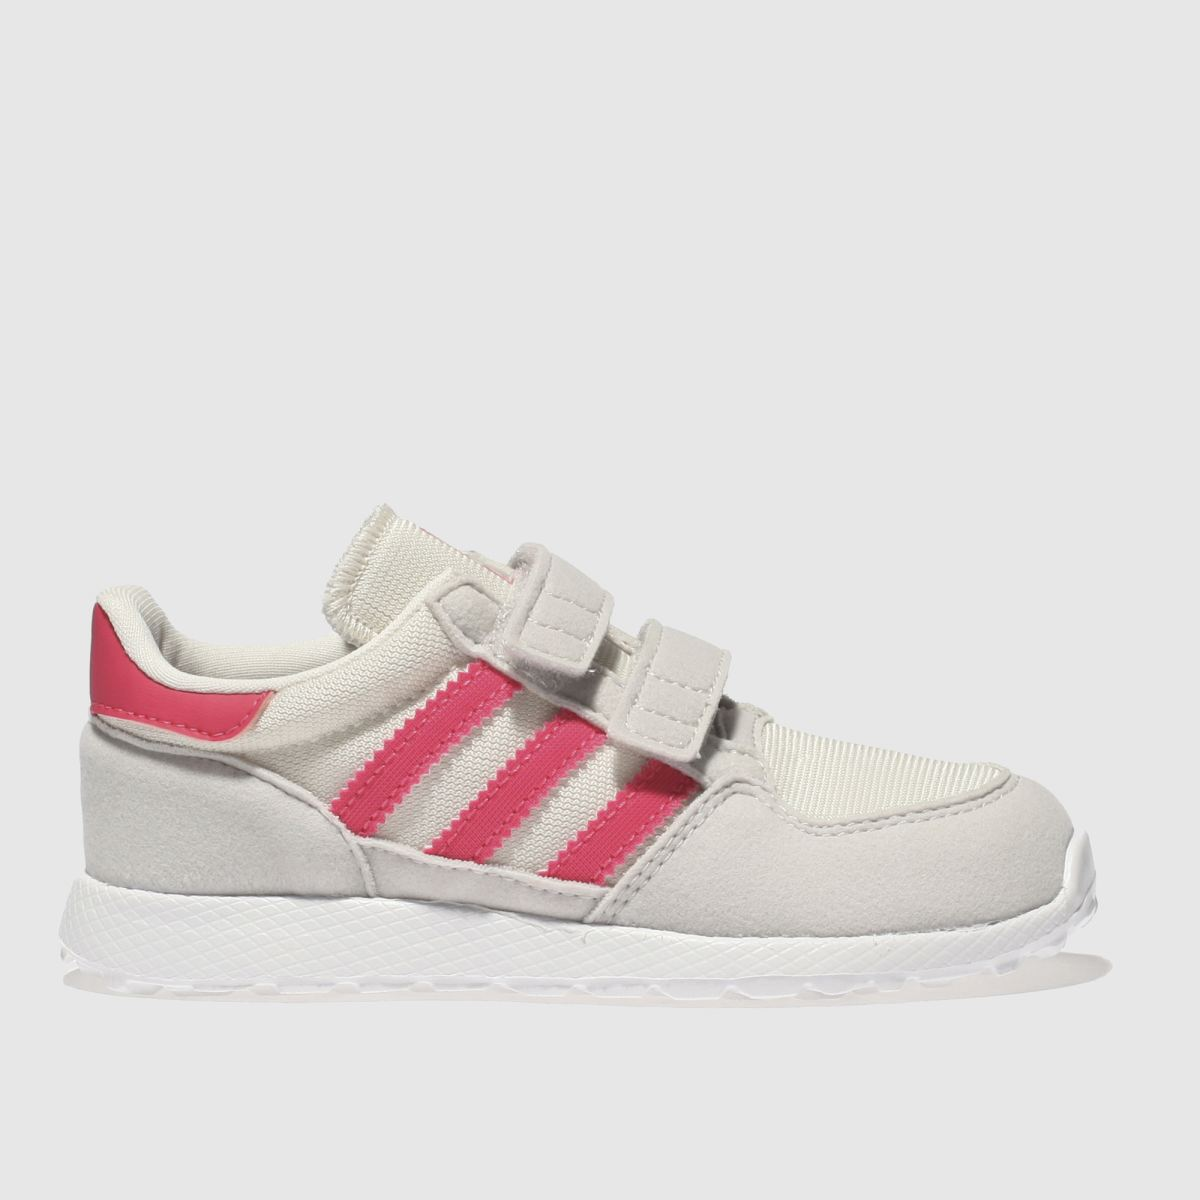 Adidas White & Pink Forest Grove Girls Toddler Toddler